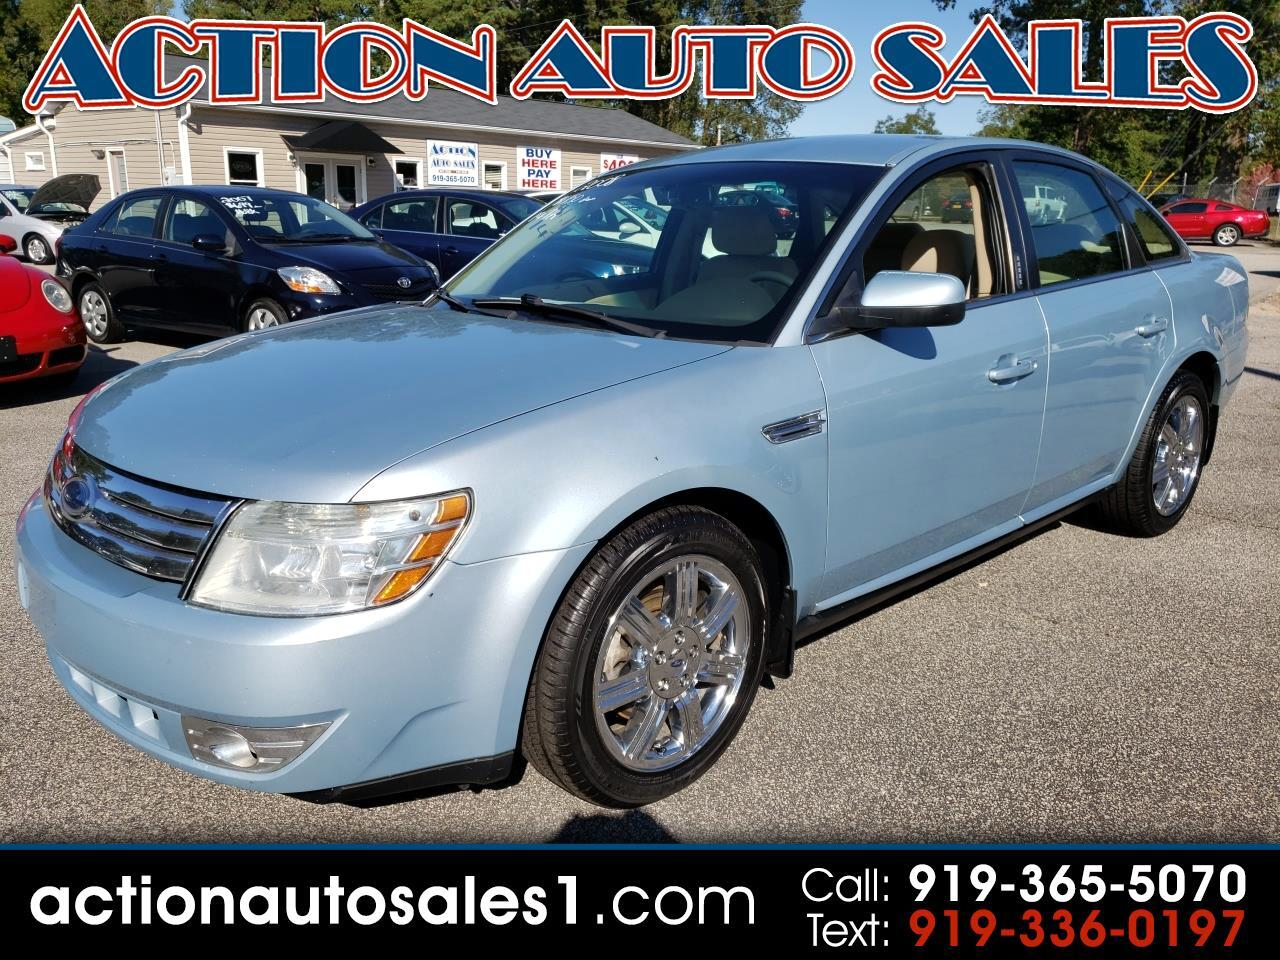 2008 Ford Taurus 4dr Sdn SEL FWD